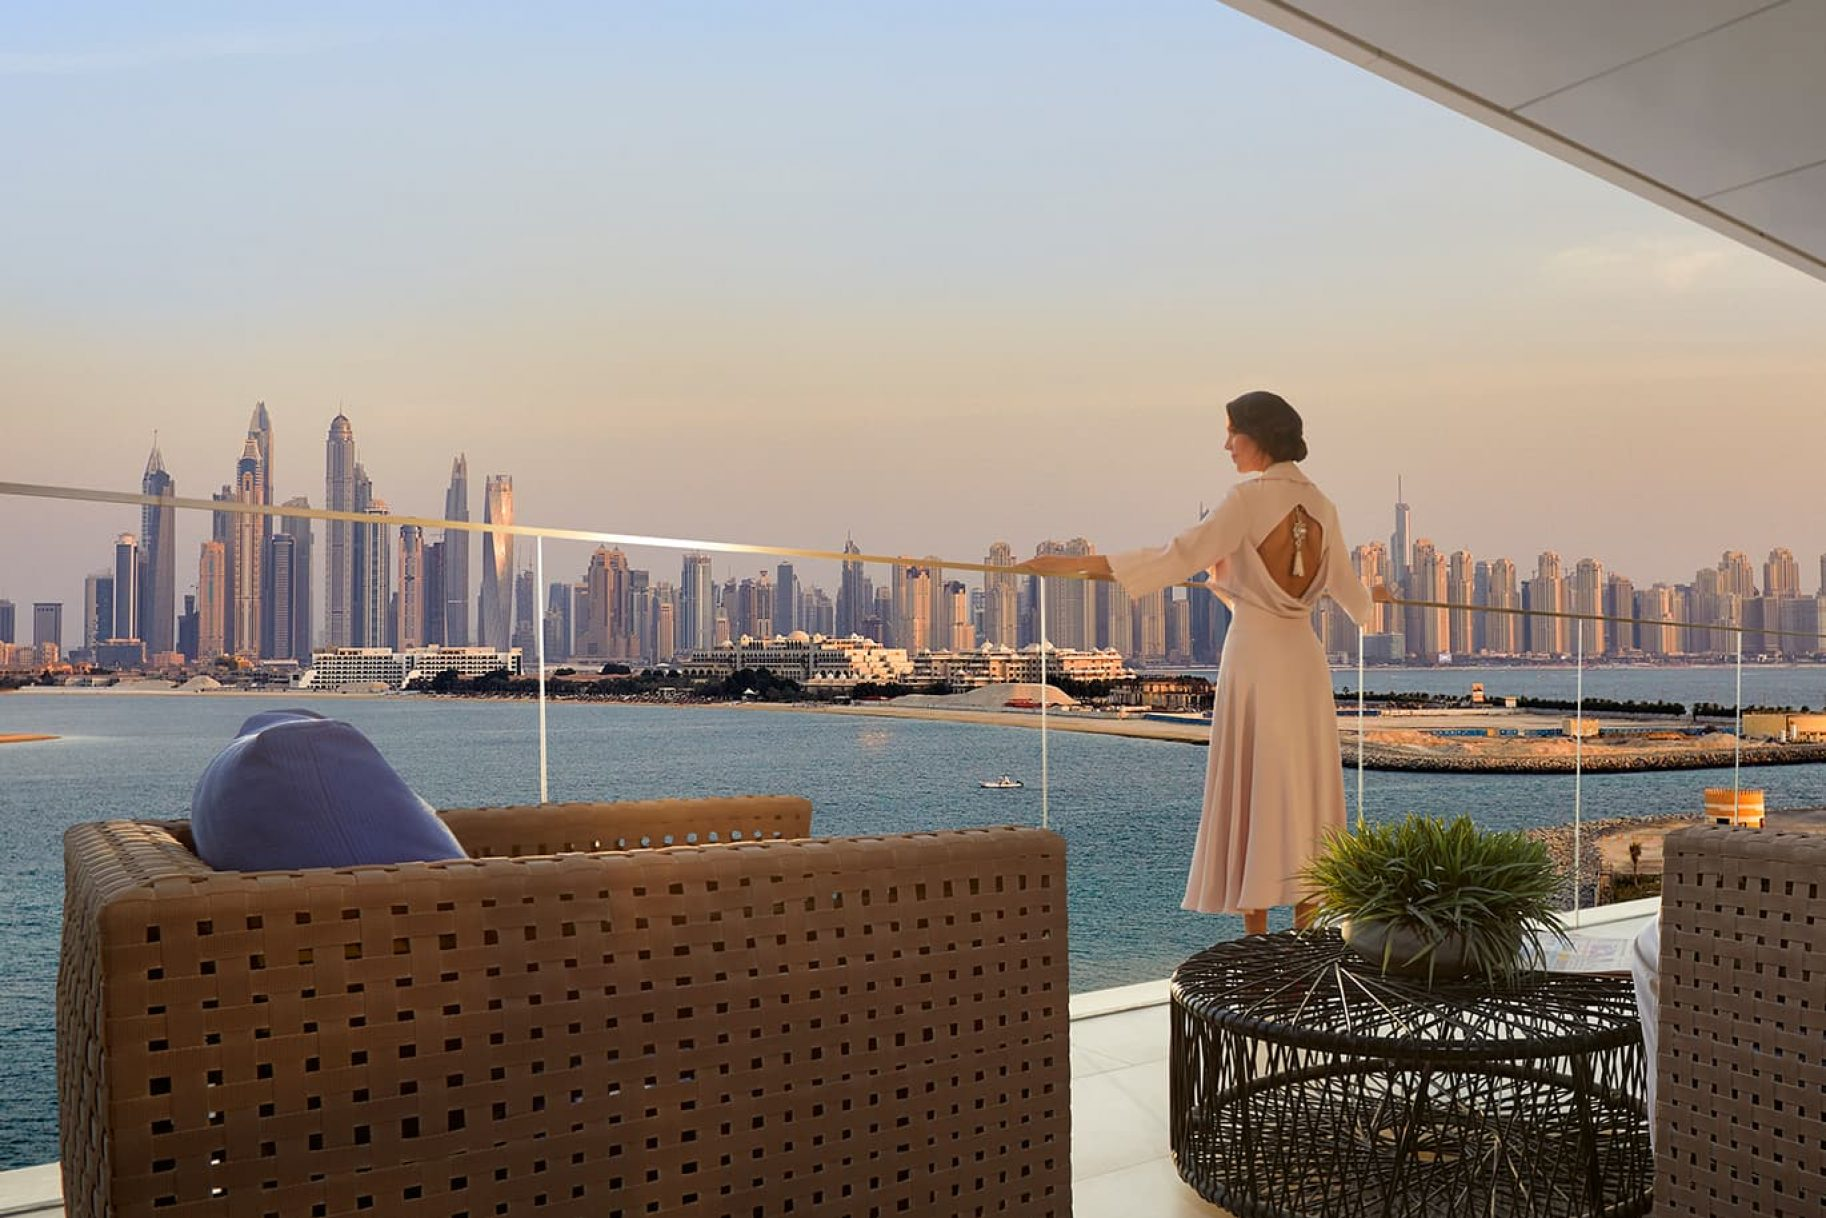 A woman looks at the Dubai skyline from the balcony of a waterfront apartment